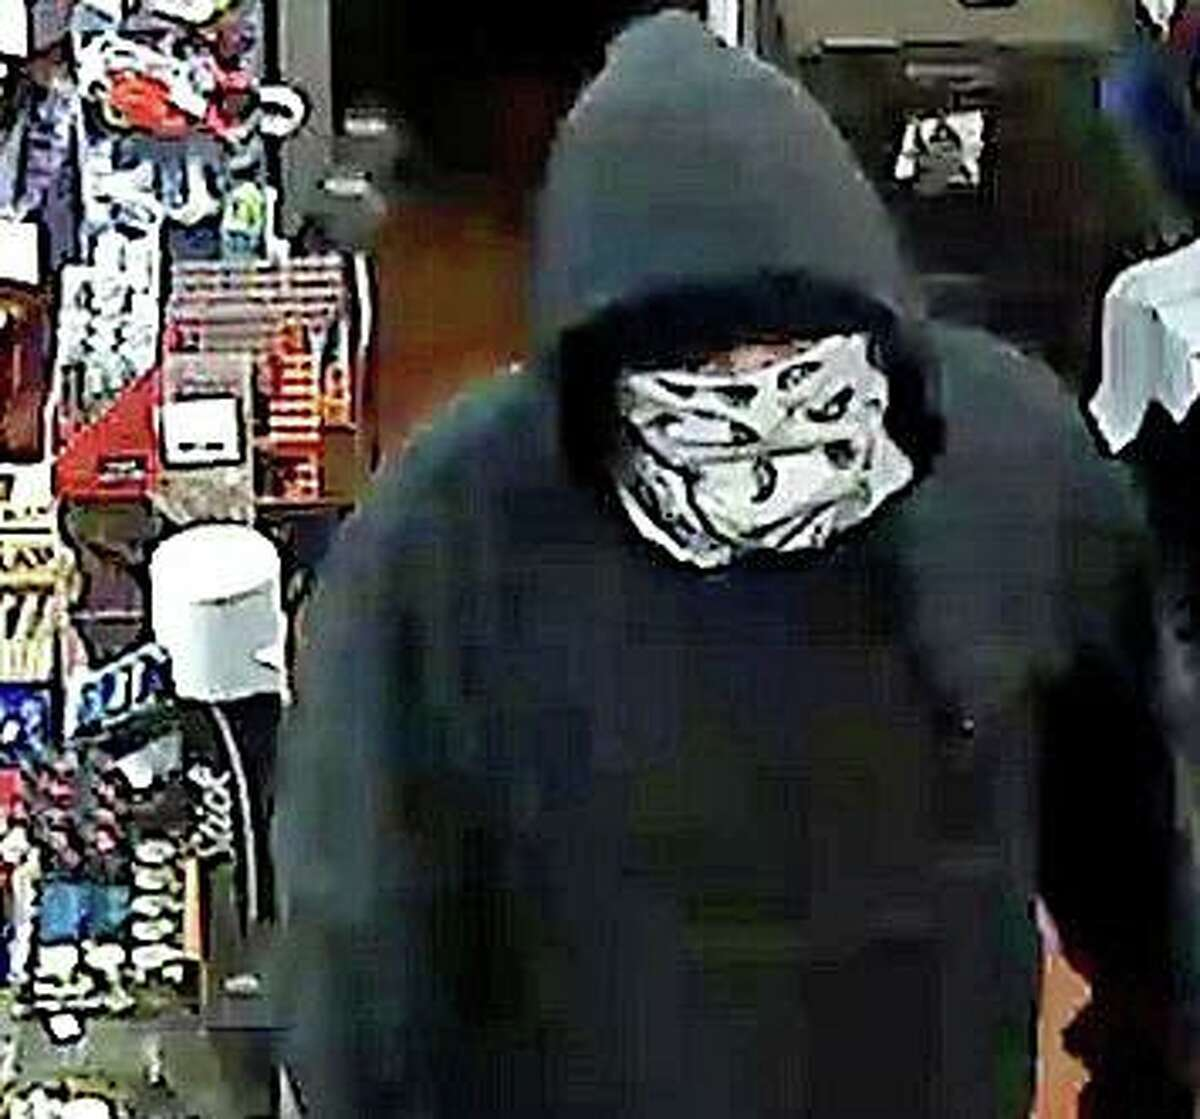 State Police are asking the public's help to identify a man who held up the Shell gas station on Route 6 on Monday night on Oct. 19, 2020. The suspect is described as a white male, approximately 6 feet tall and weighing 200 pounds, He was wearing a gray hoodie, black-colored jeans and a white mask with black markings.